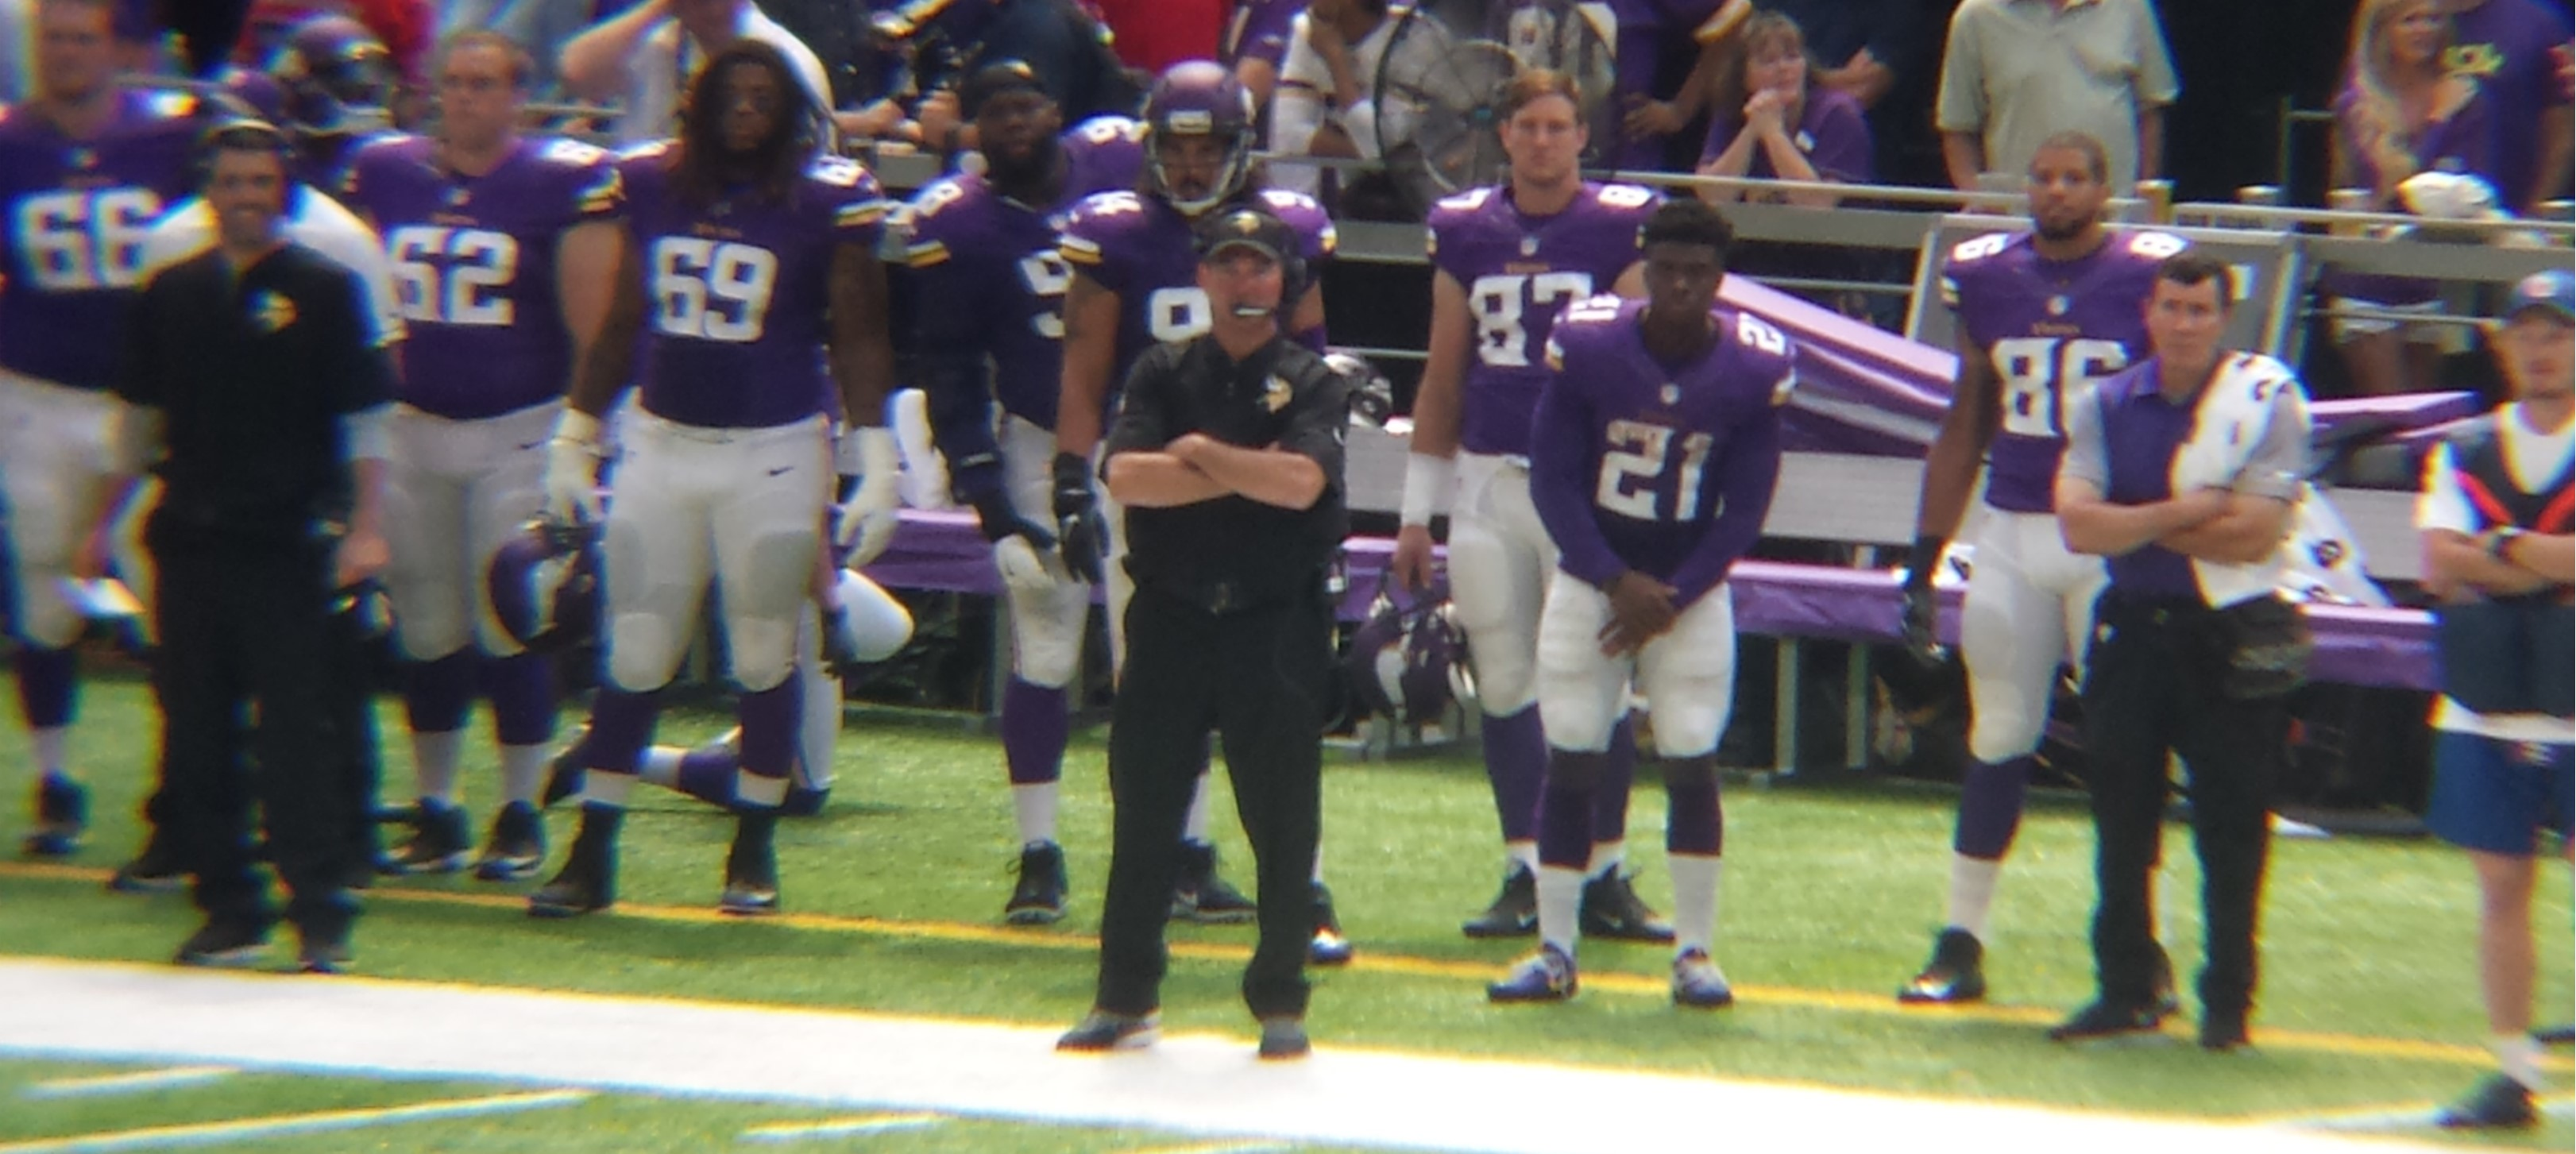 Minnesota Vikings U.S. Bank Stadium First Game - Coach Mike Zimmer